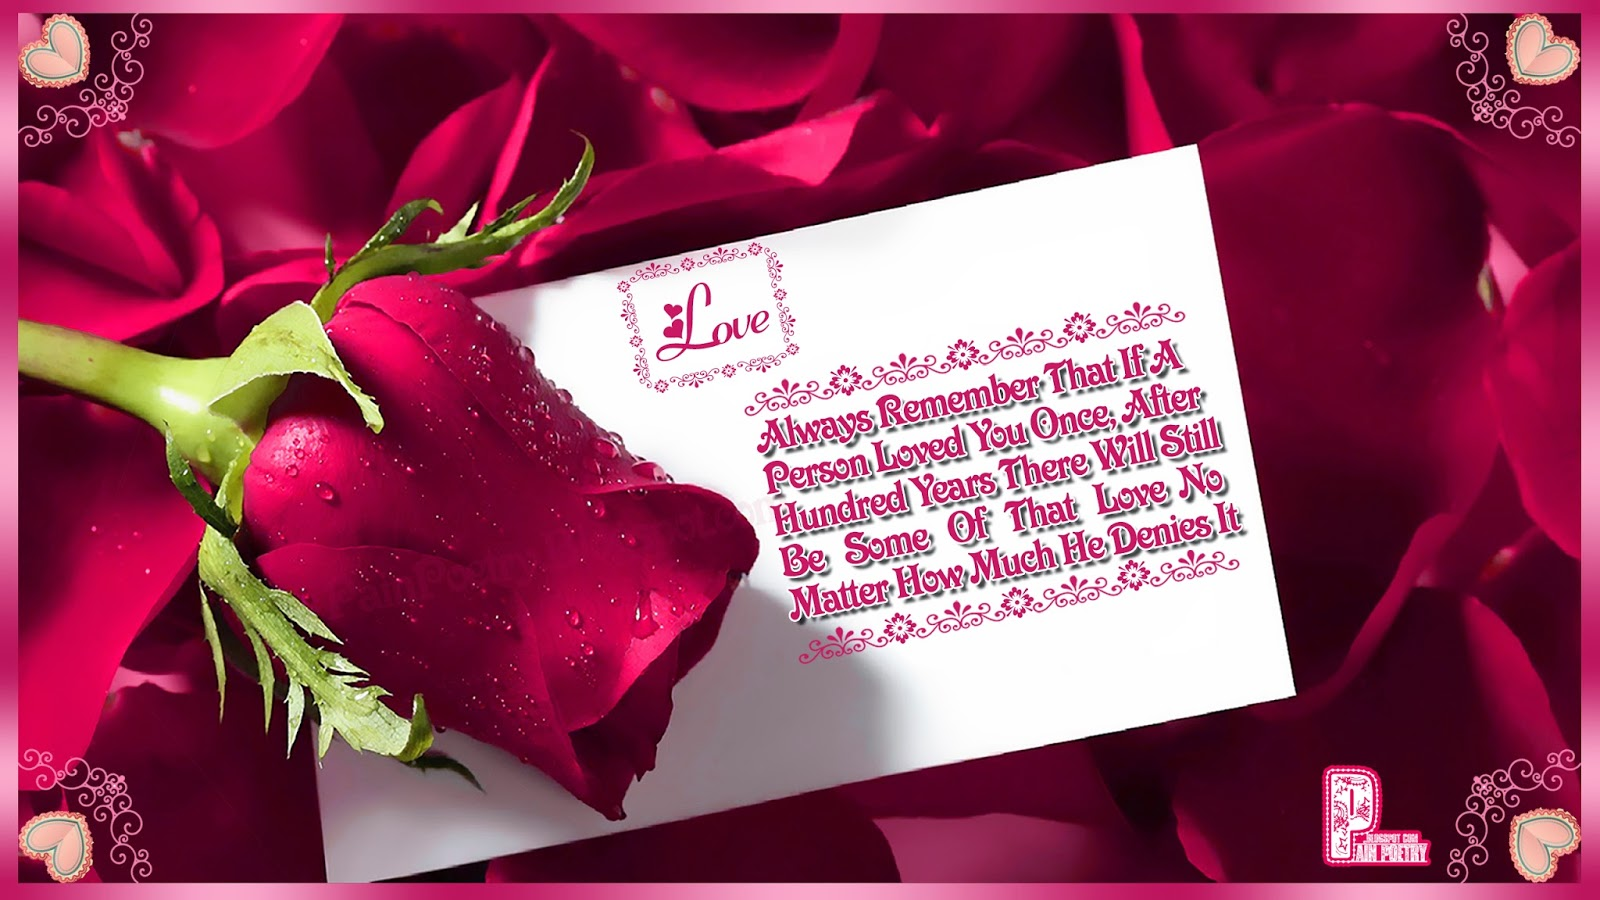 Love-Greetings-Quote-For-Lovers-With-Red-Rose-Image-Photo-Wallpaper-HD